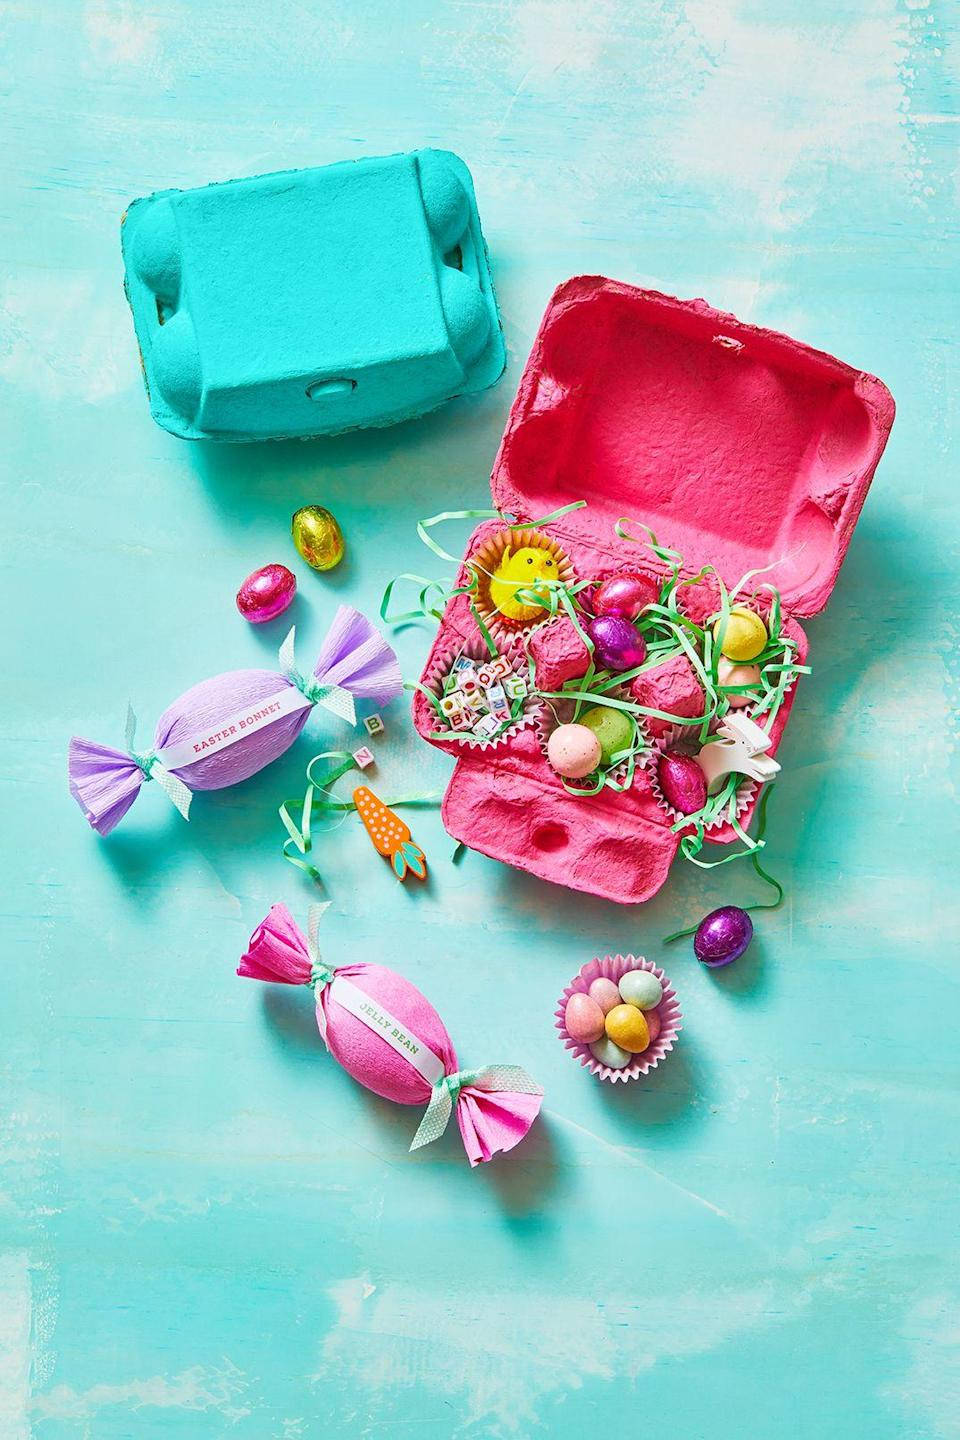 """<p>On Easter Sunday, everyone is more concerned about everything that's tucked inside their baskets than the baskets themselves. While it may be hard to compete with <a href=""""https://www.goodhousekeeping.com/holidays/easter-ideas/g1034/easter-chocolate-eggs/"""" rel=""""nofollow noopener"""" target=""""_blank"""" data-ylk=""""slk:chocolate eggs"""" class=""""link rapid-noclick-resp"""">chocolate eggs</a>, jelly beans, and sugary-sweet <a href=""""https://www.goodhousekeeping.com/holidays/easter-ideas/g26588643/best-easter-basket-stuffers/"""" rel=""""nofollow noopener"""" target=""""_blank"""" data-ylk=""""slk:basket stuffers"""" class=""""link rapid-noclick-resp"""">basket stuffers</a>, these fun Easter basket ideas will still find a way to grab everyone's attention. Most of the homemade baskets on this list are embellished with seasonal decorations — faux flowers, pastel eggs, and bunny faces — but there are also some ideas tailored specifically for different interests and age groups, including toddlers, babies, kids, teens, and adults. There's also a basket for every skill level and price point, whether you're looking to build a basket from nothing (a <a href=""""https://www.goodhousekeeping.com/holidays/easter-ideas/a31116749/diy-paper-easter-basket/"""" rel=""""nofollow noopener"""" target=""""_blank"""" data-ylk=""""slk:woven paper basket"""" class=""""link rapid-noclick-resp"""">woven paper basket</a>) or for simple ways to spruce up a boring wicker basket stashed away in your closet. In the end, the goal is the same: to craft a basket that your friends and family will want to re-use in the years ahead.</p><p>But you're not done the minute you put your craft supplies away. Then it's time to become the Easter Bunny and find adorable fillers, <a href=""""https://www.goodhousekeeping.com/holidays/easter-ideas/g1027/10-easter-baskets-and-fillers/"""" rel=""""nofollow noopener"""" target=""""_blank"""" data-ylk=""""slk:kid-approved gifts"""" class=""""link rapid-noclick-resp"""">kid-approved gifts</a>, and <a href=""""https://www.goodhousekeeping.com/holidays/easter-ideas/g31229341"""